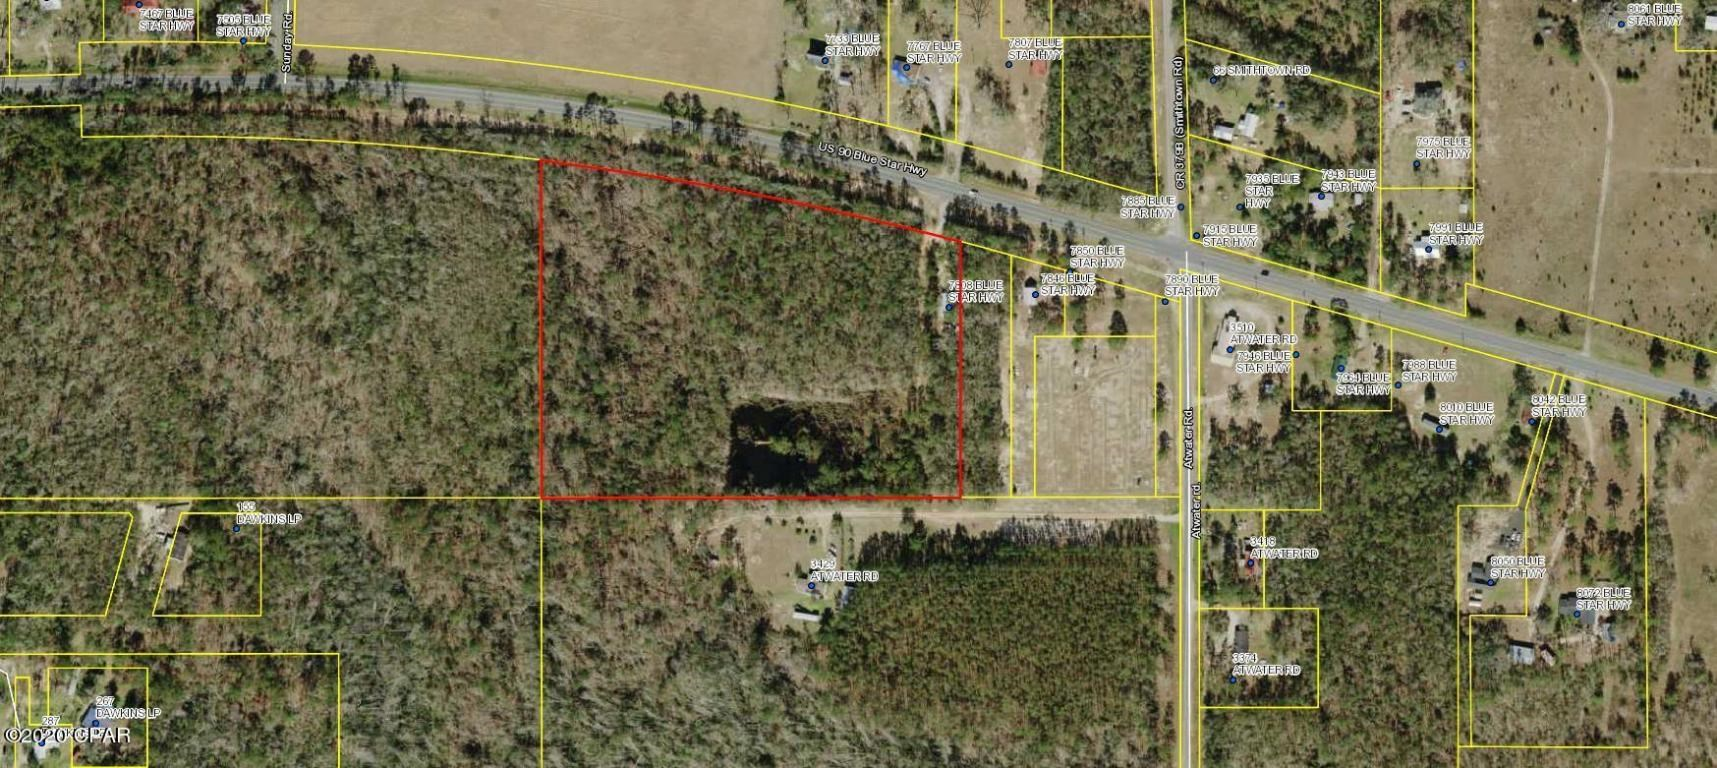 12.44 acres for sale